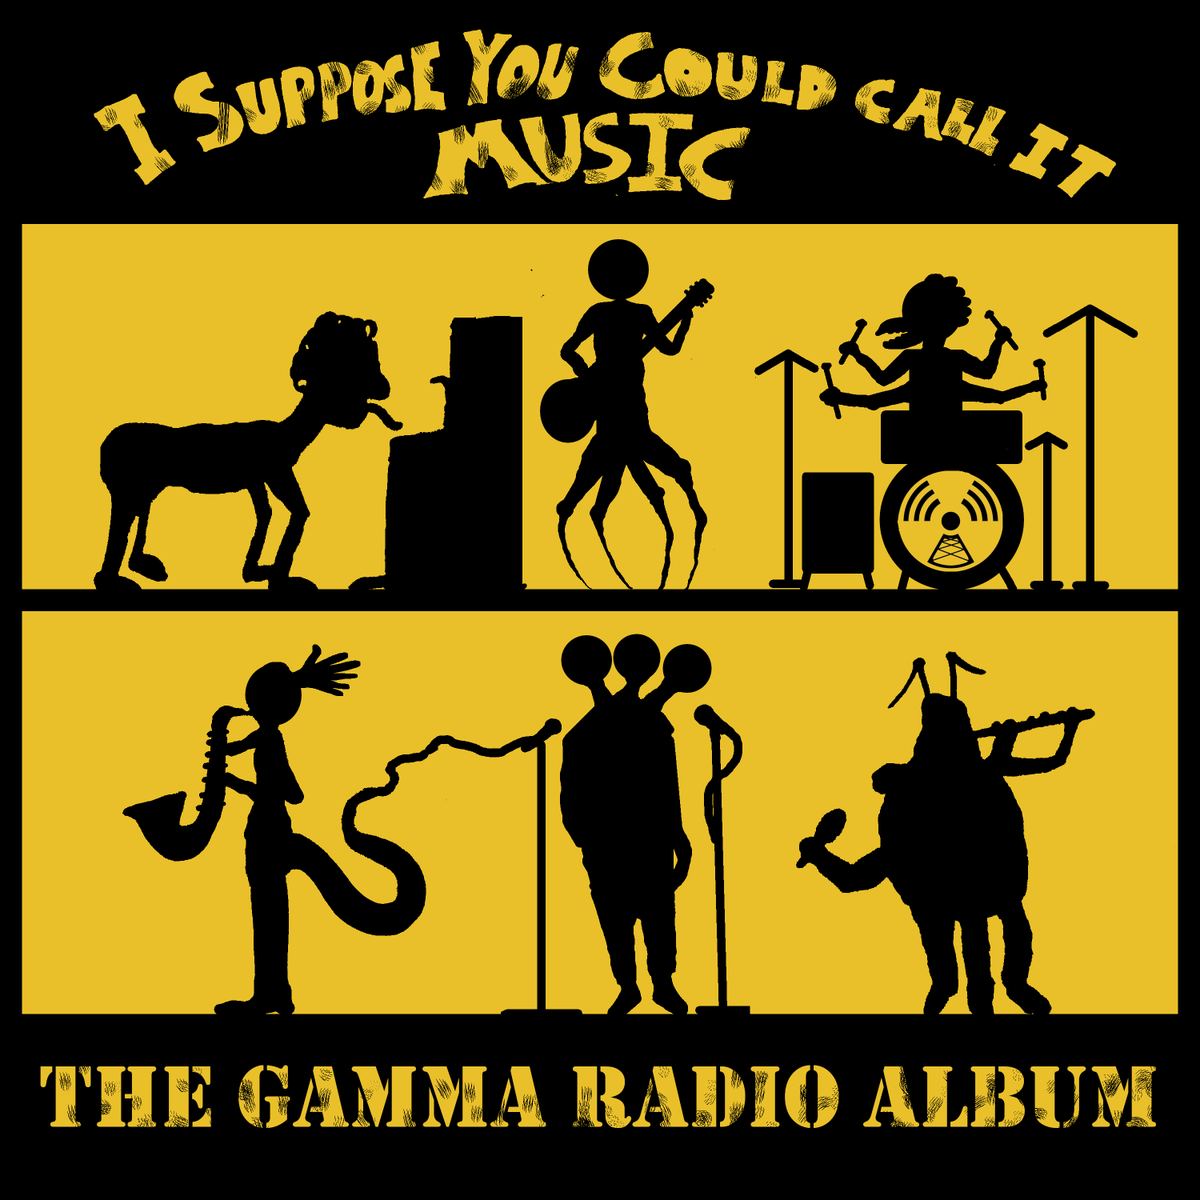 The new Gamma Radio album is out tomorrow, featuring 23 songs from our show remixed, remastered, and in some cases re-recorded! Check out our website and our Bandcamp page for more details! http://www.gamma-radio.co.uk  https://gammaradio.bandcamp.com/releases  #NewAlbum #Comedy #Newpic.twitter.com/XWNNNlOf1t